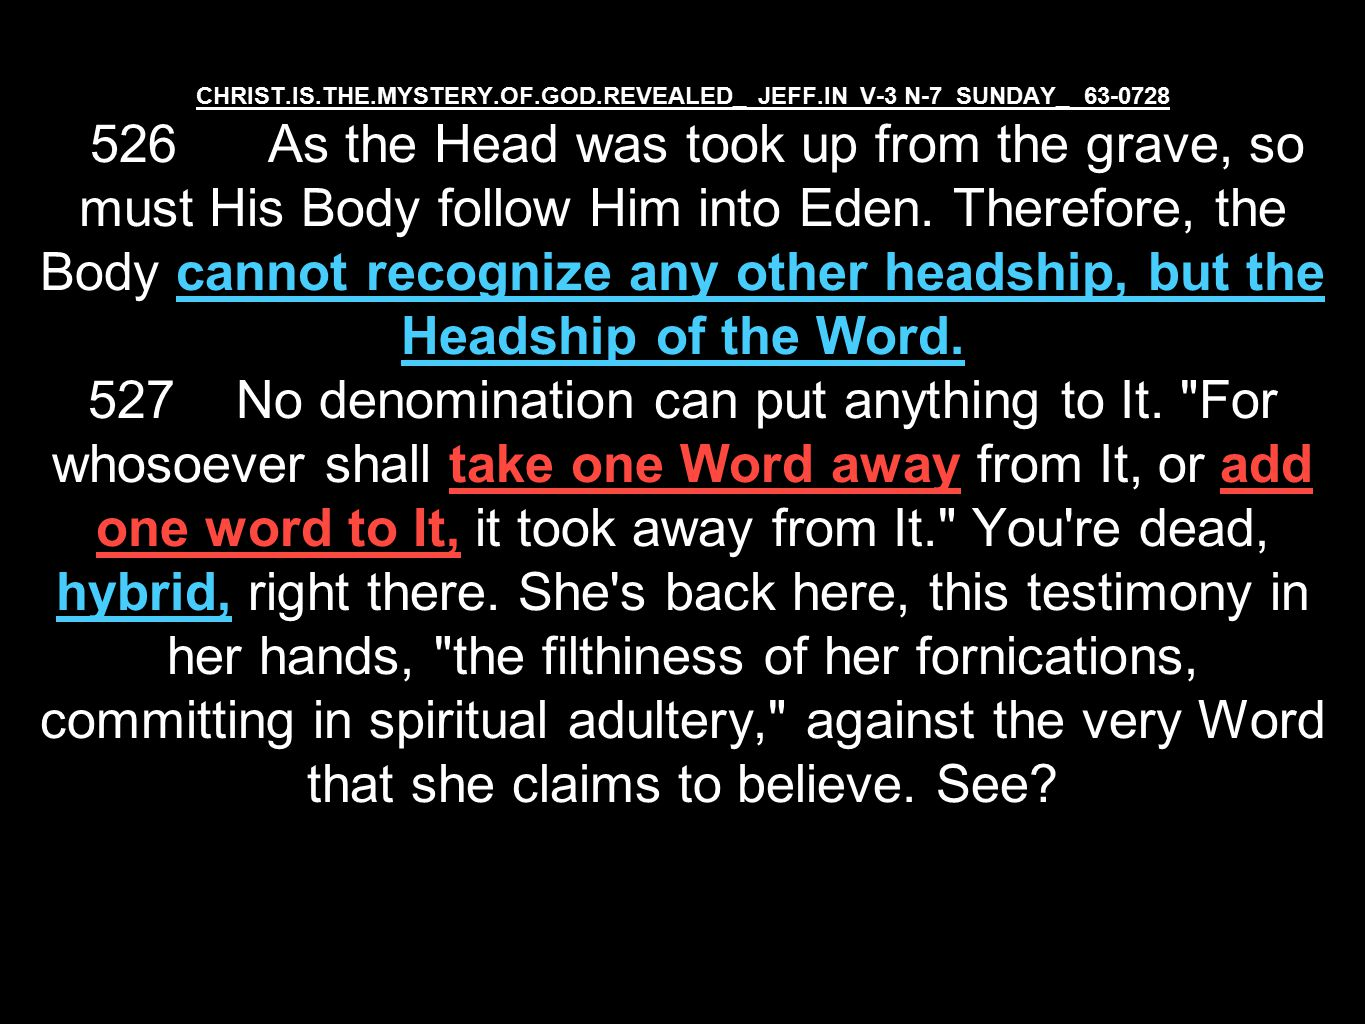 CHRIST.IS.THE.MYSTERY.OF.GOD.REVEALED_ JEFF.IN V-3 N-7 SUNDAY_ 63-0728 526 As the Head was took up from the grave, so must His Body follow Him into Eden.